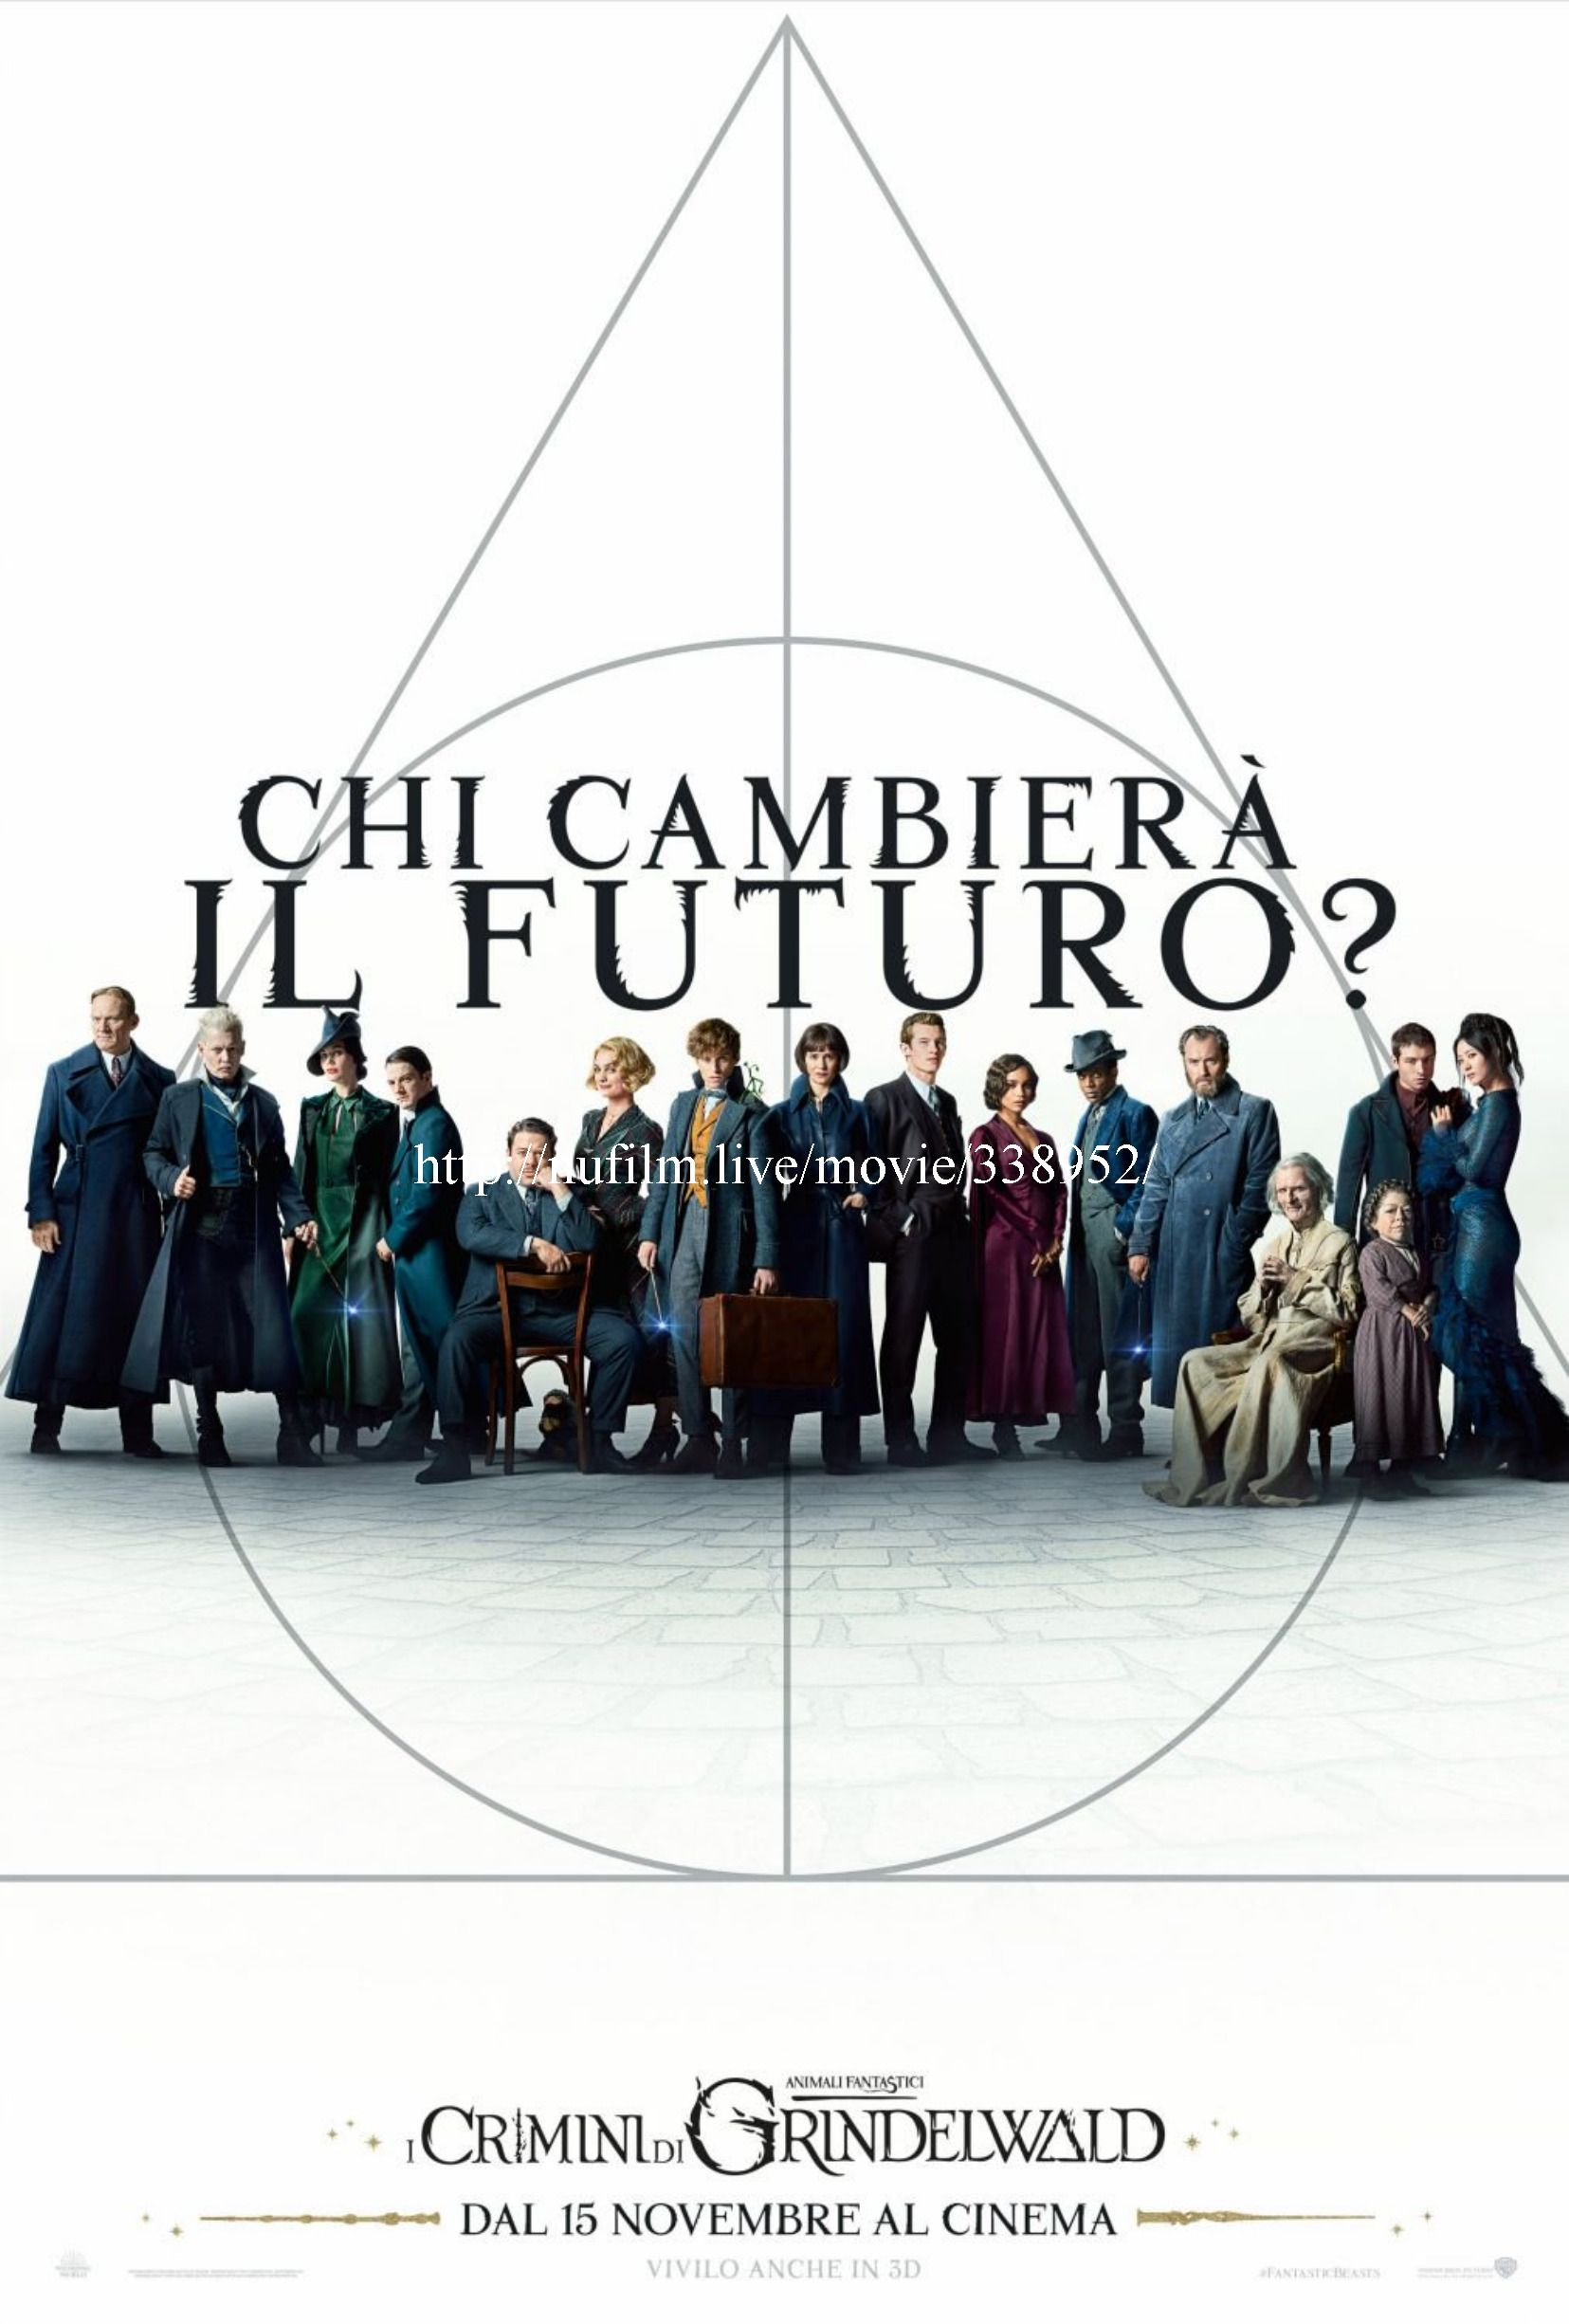 Guarda Vedere Fantastic Beasts The Crimes Of Grindelwald 2018 Film Aefh Les Animaux Fantastiques Animal Fantastique Animaux Fantastiques